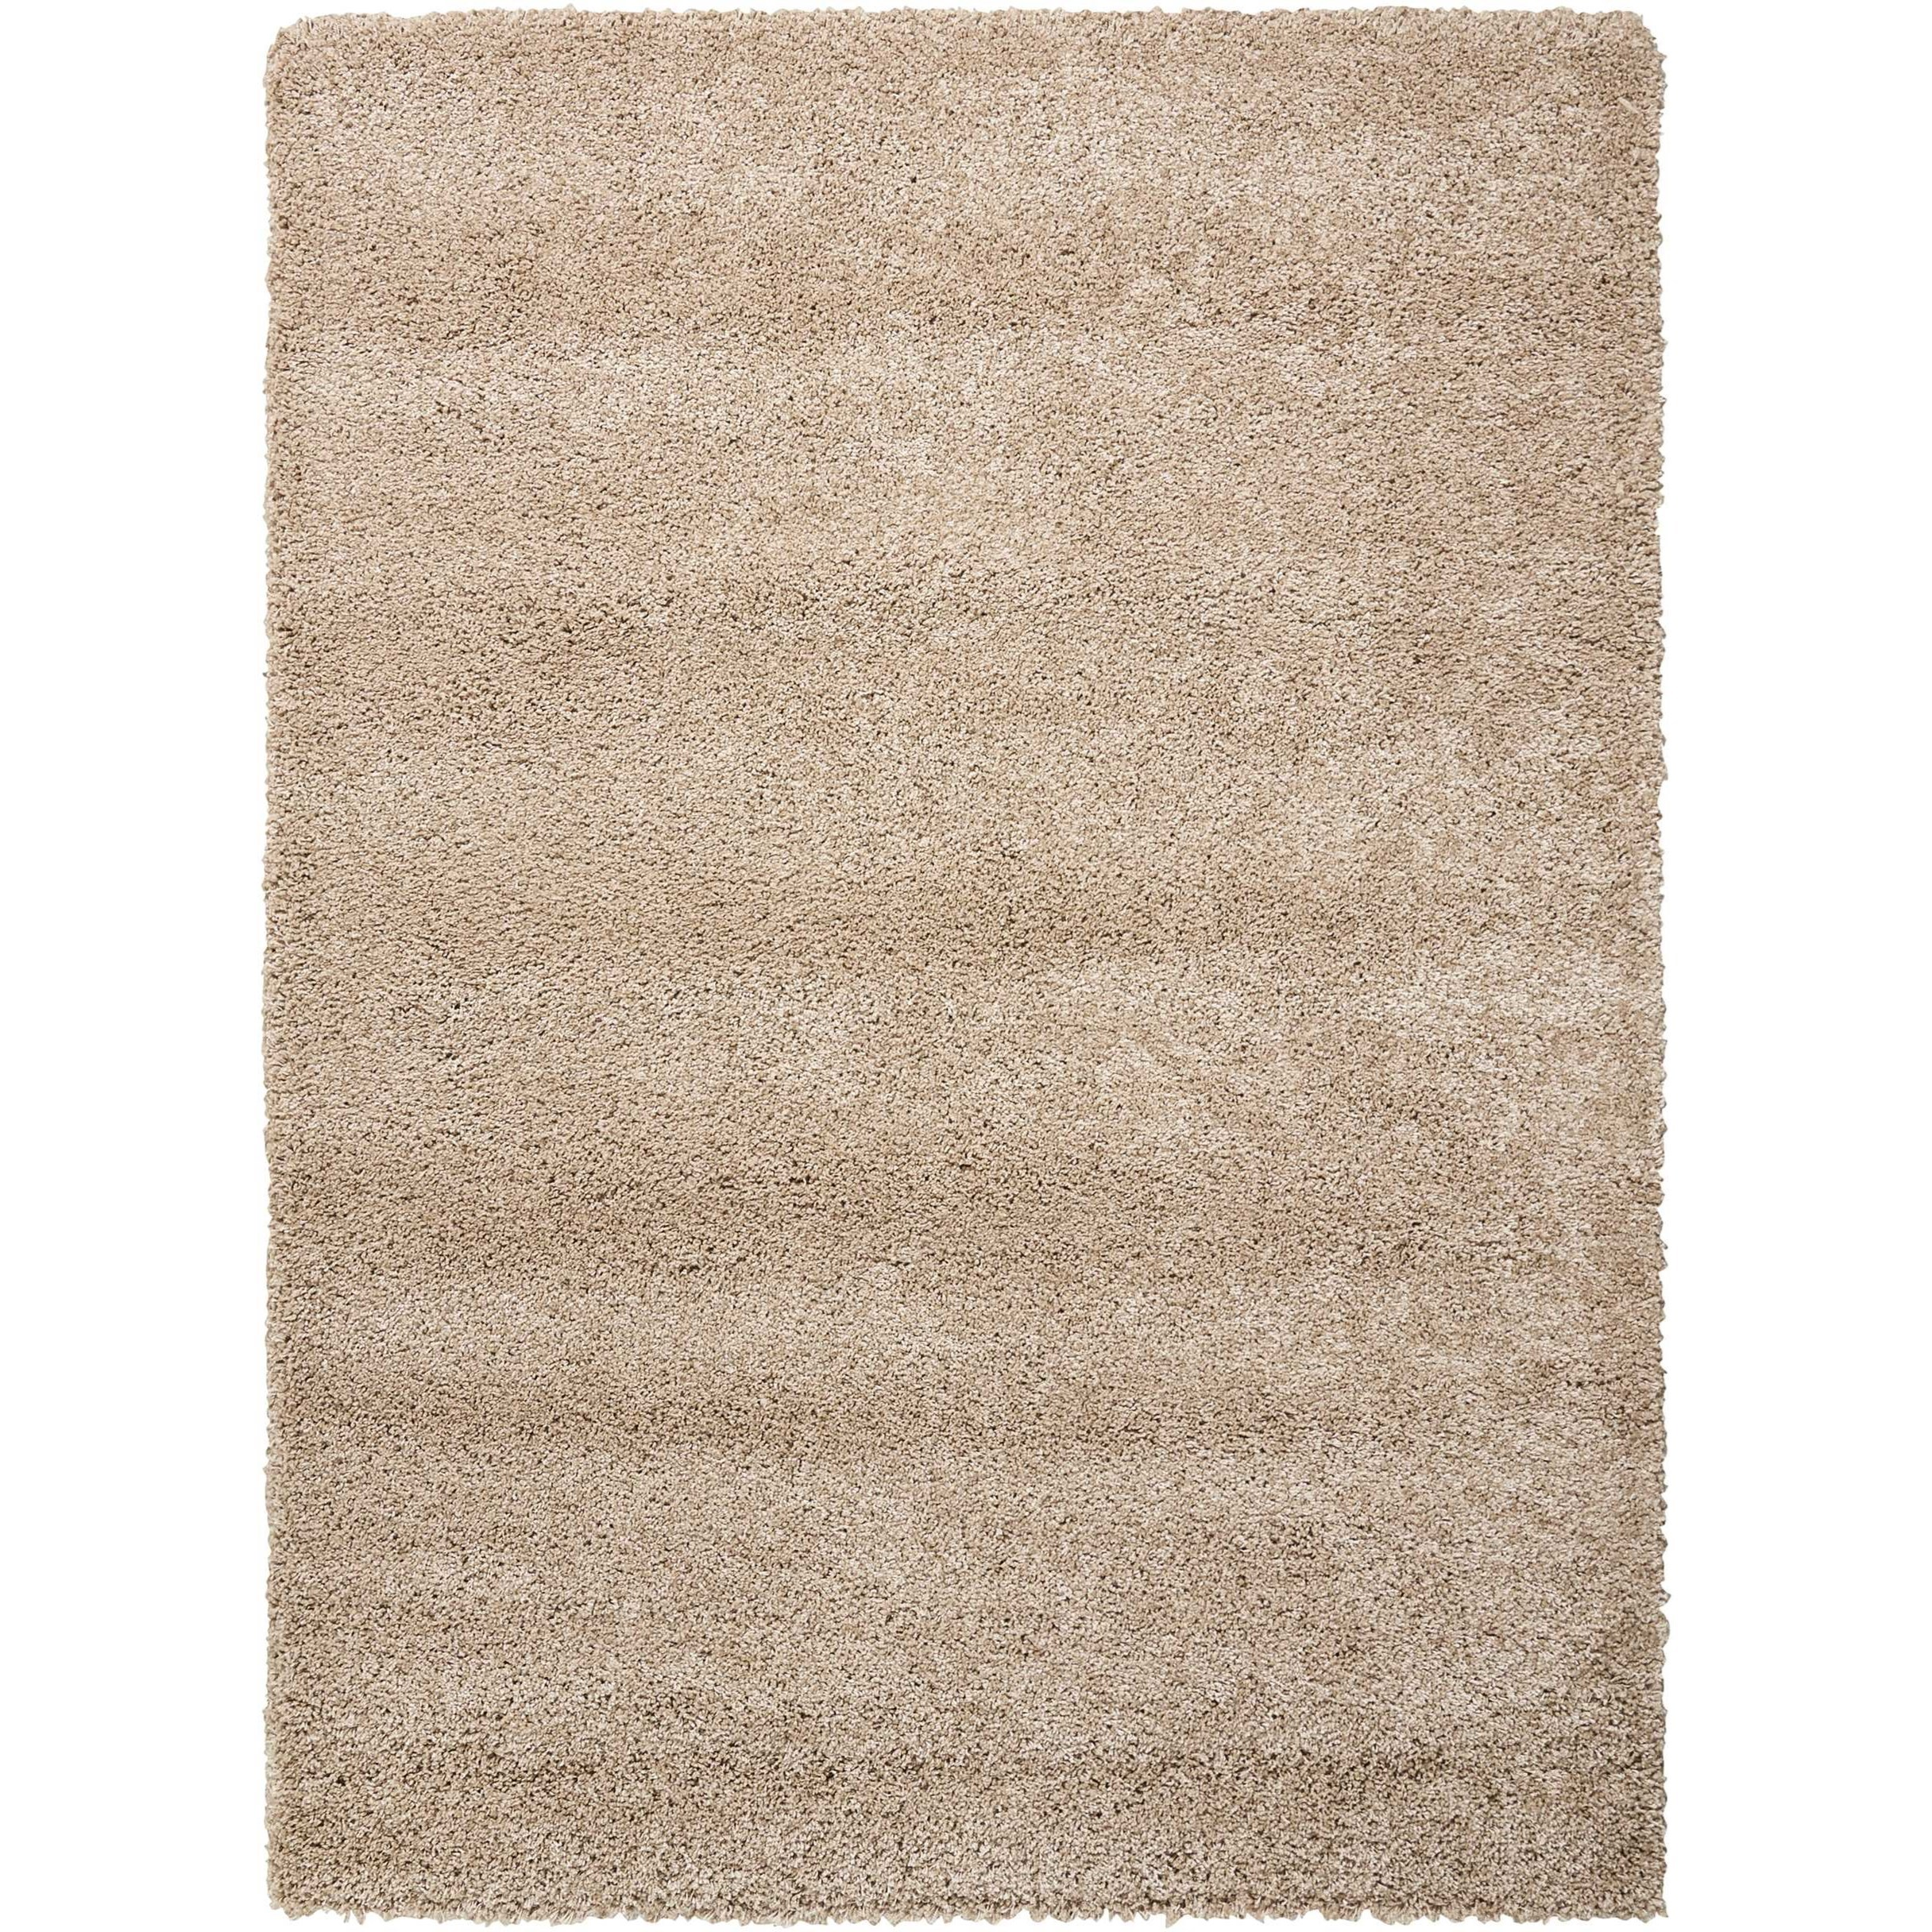 """Amore 5'3"""" x 7'5"""" Oyster Rectangle Rug by Nourison at Sprintz Furniture"""